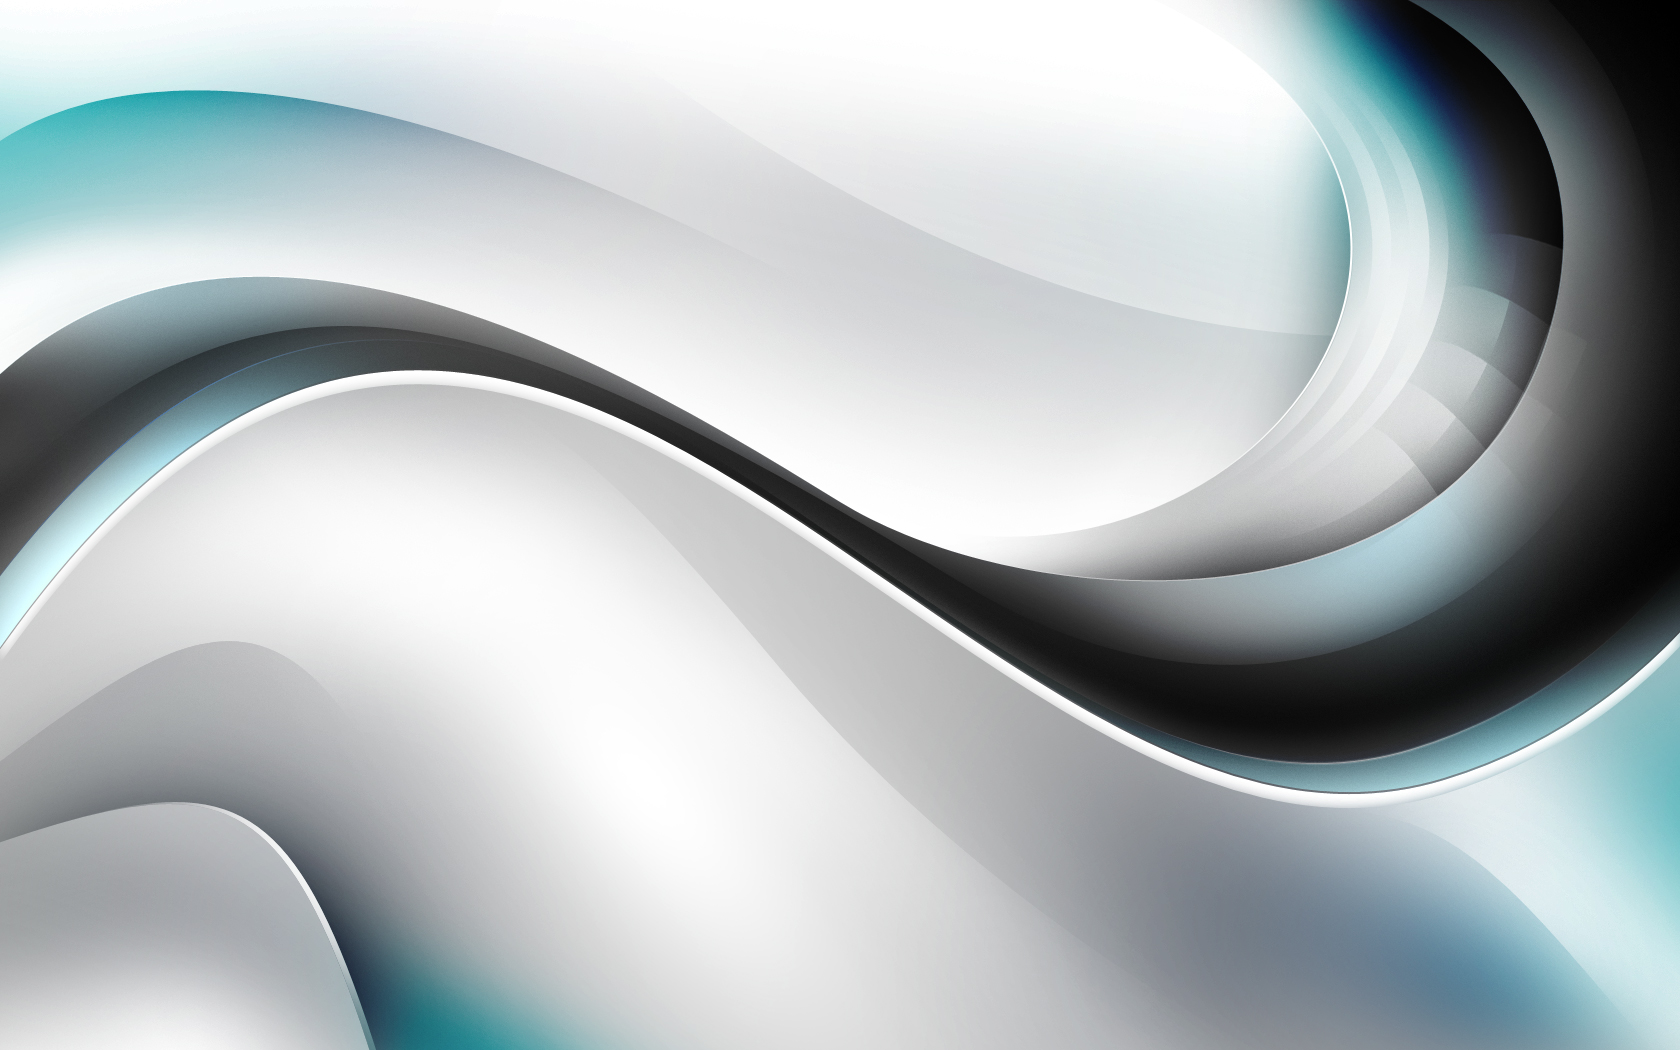 abstract white silver hd wallpaper background   HD Wallpapers 1680x1050